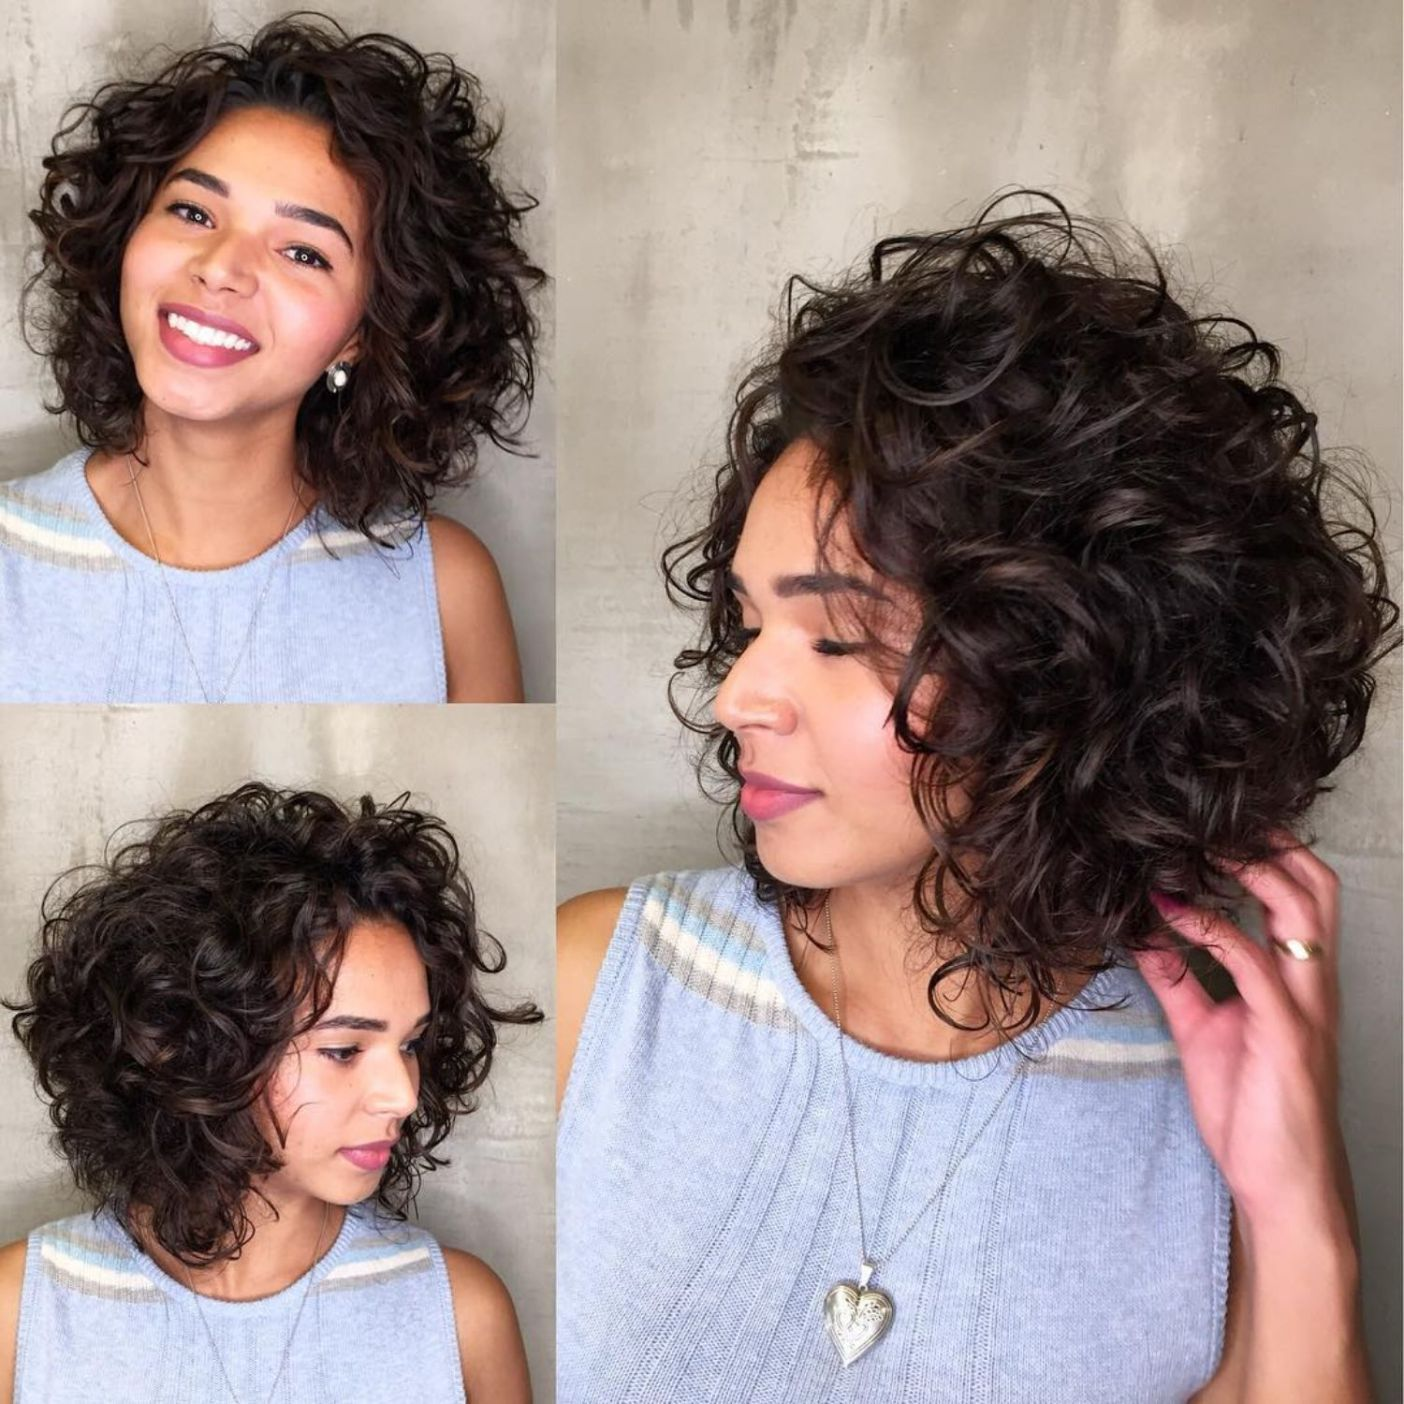 65 Different Versions Of Curly Bob Hairstyle Layeredcurlyhair Luxurious Angled Curly Bob In 2020 Frisur Bob Locken Bob Frisur Locken Kurz Naturlocken Frisuren